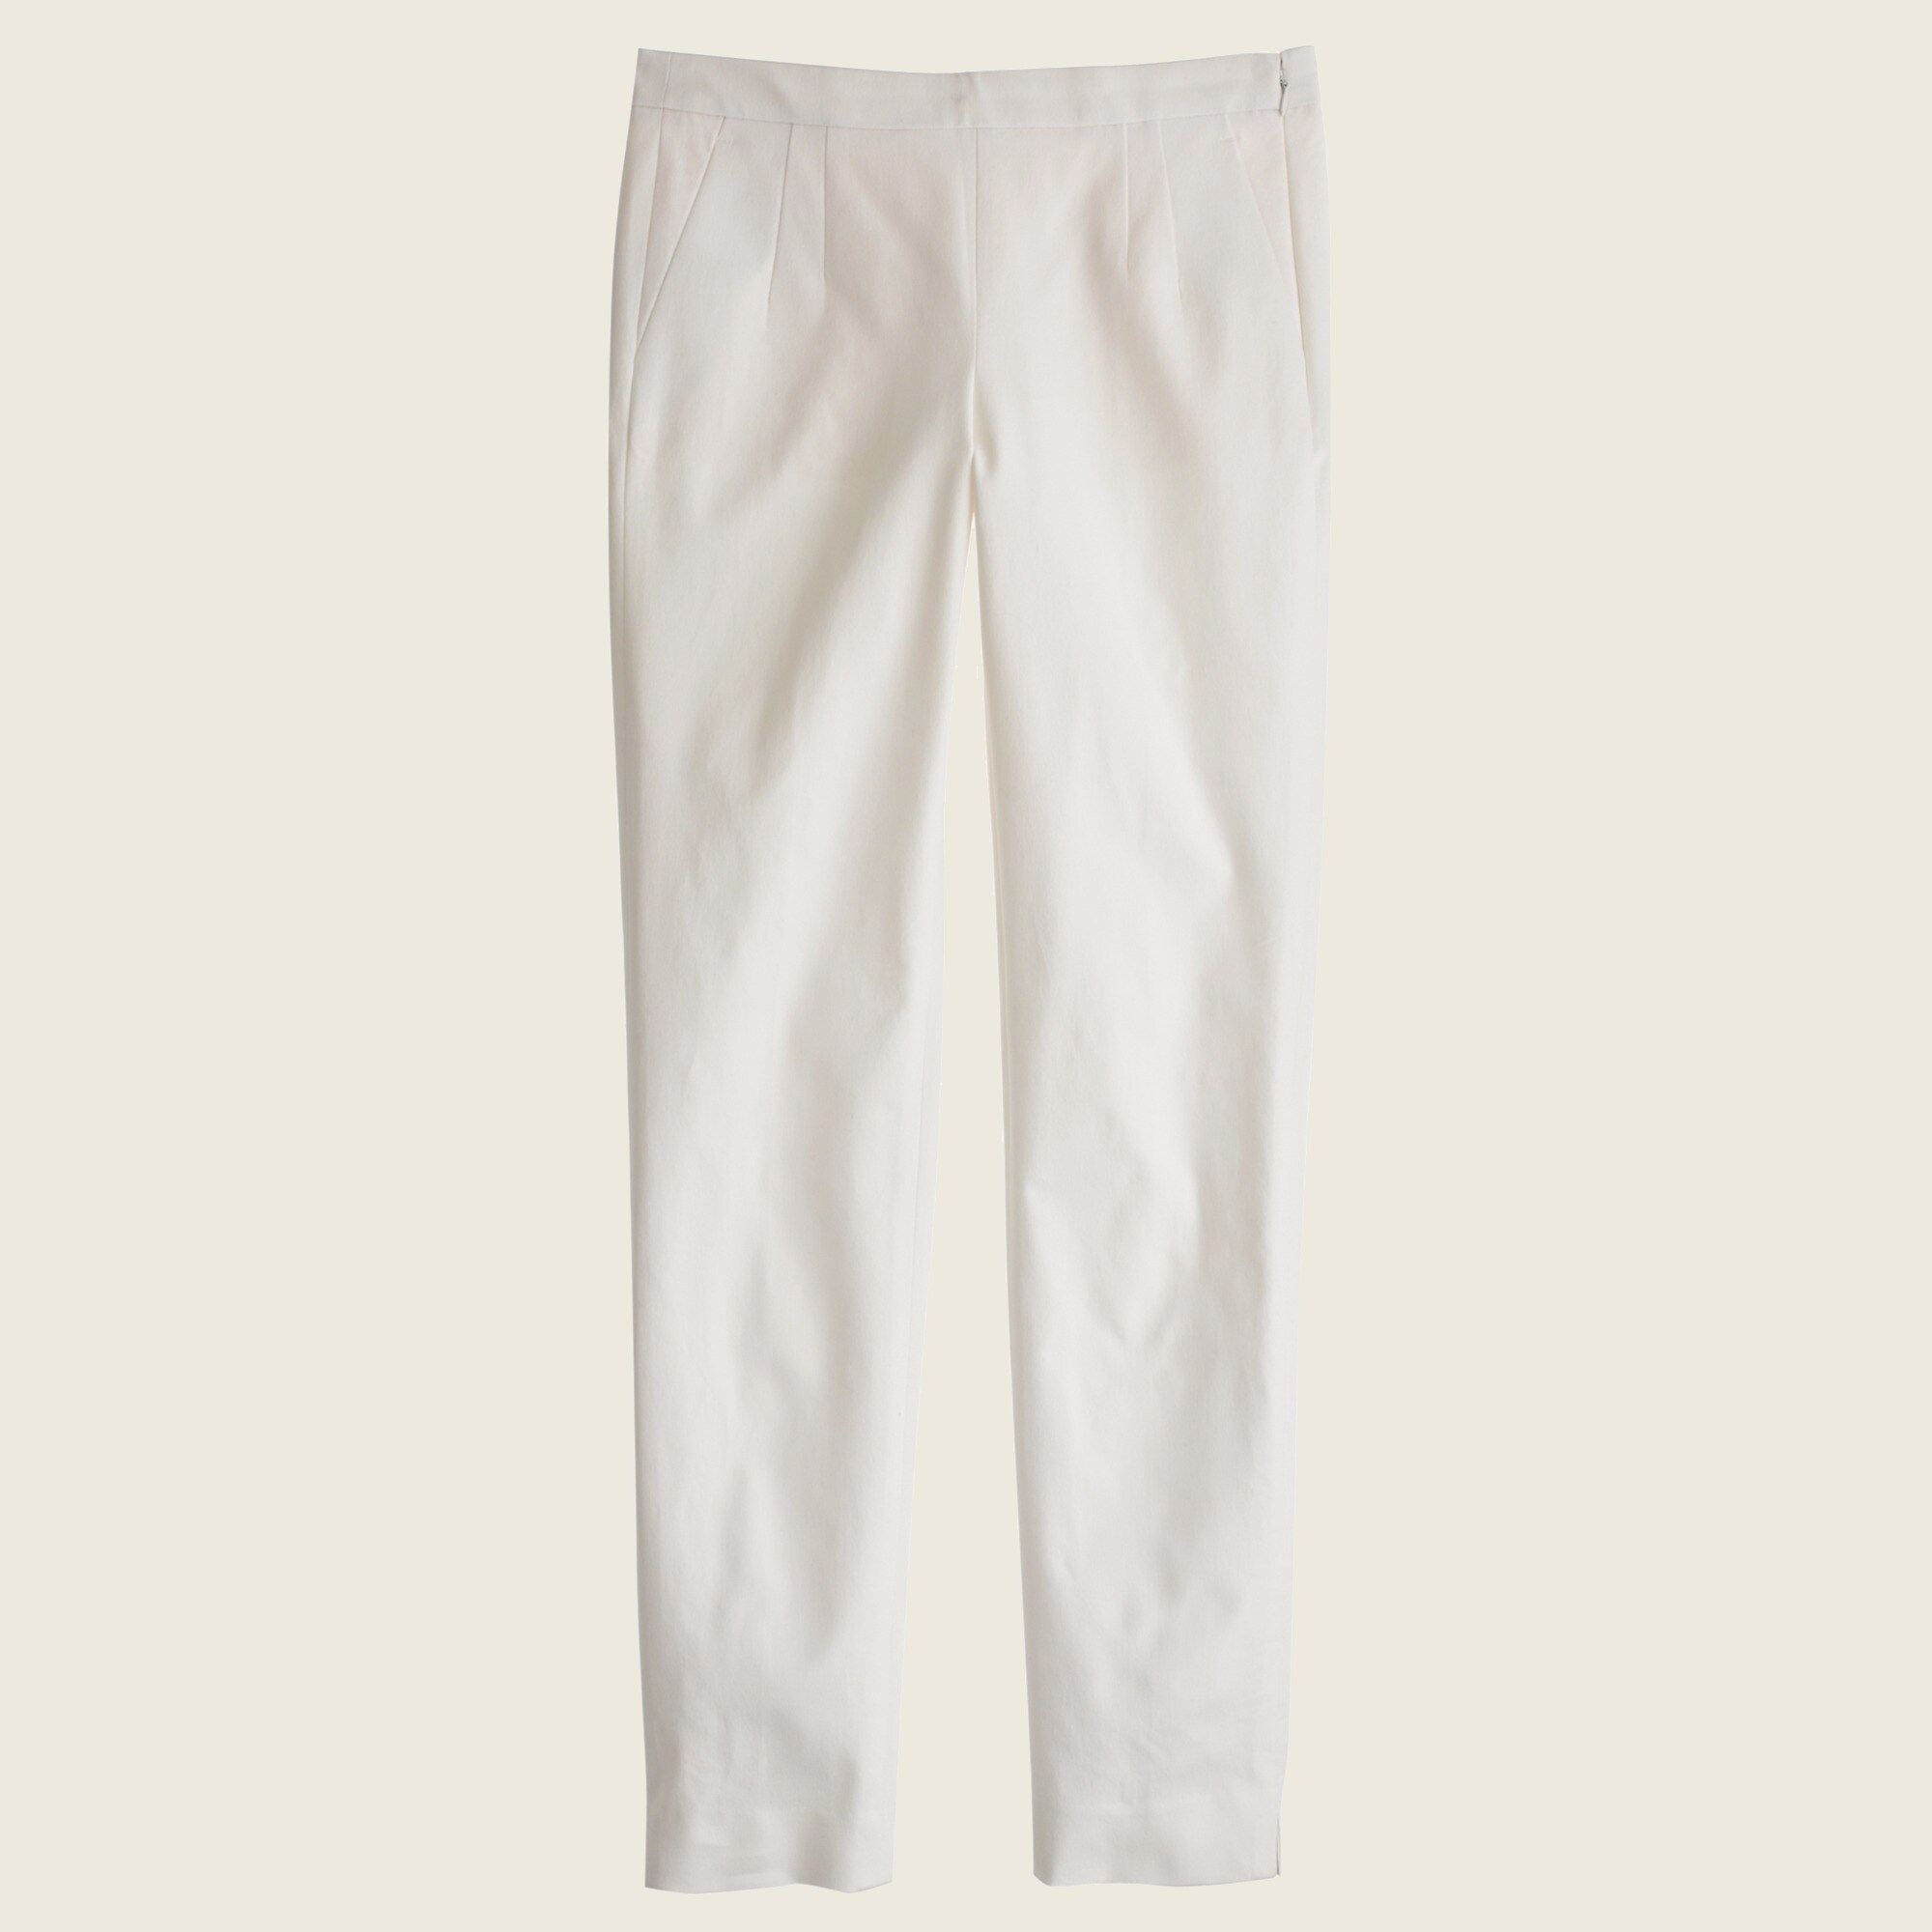 Image 2 for Tall Martie slim crop pant in stretch cotton with side zip